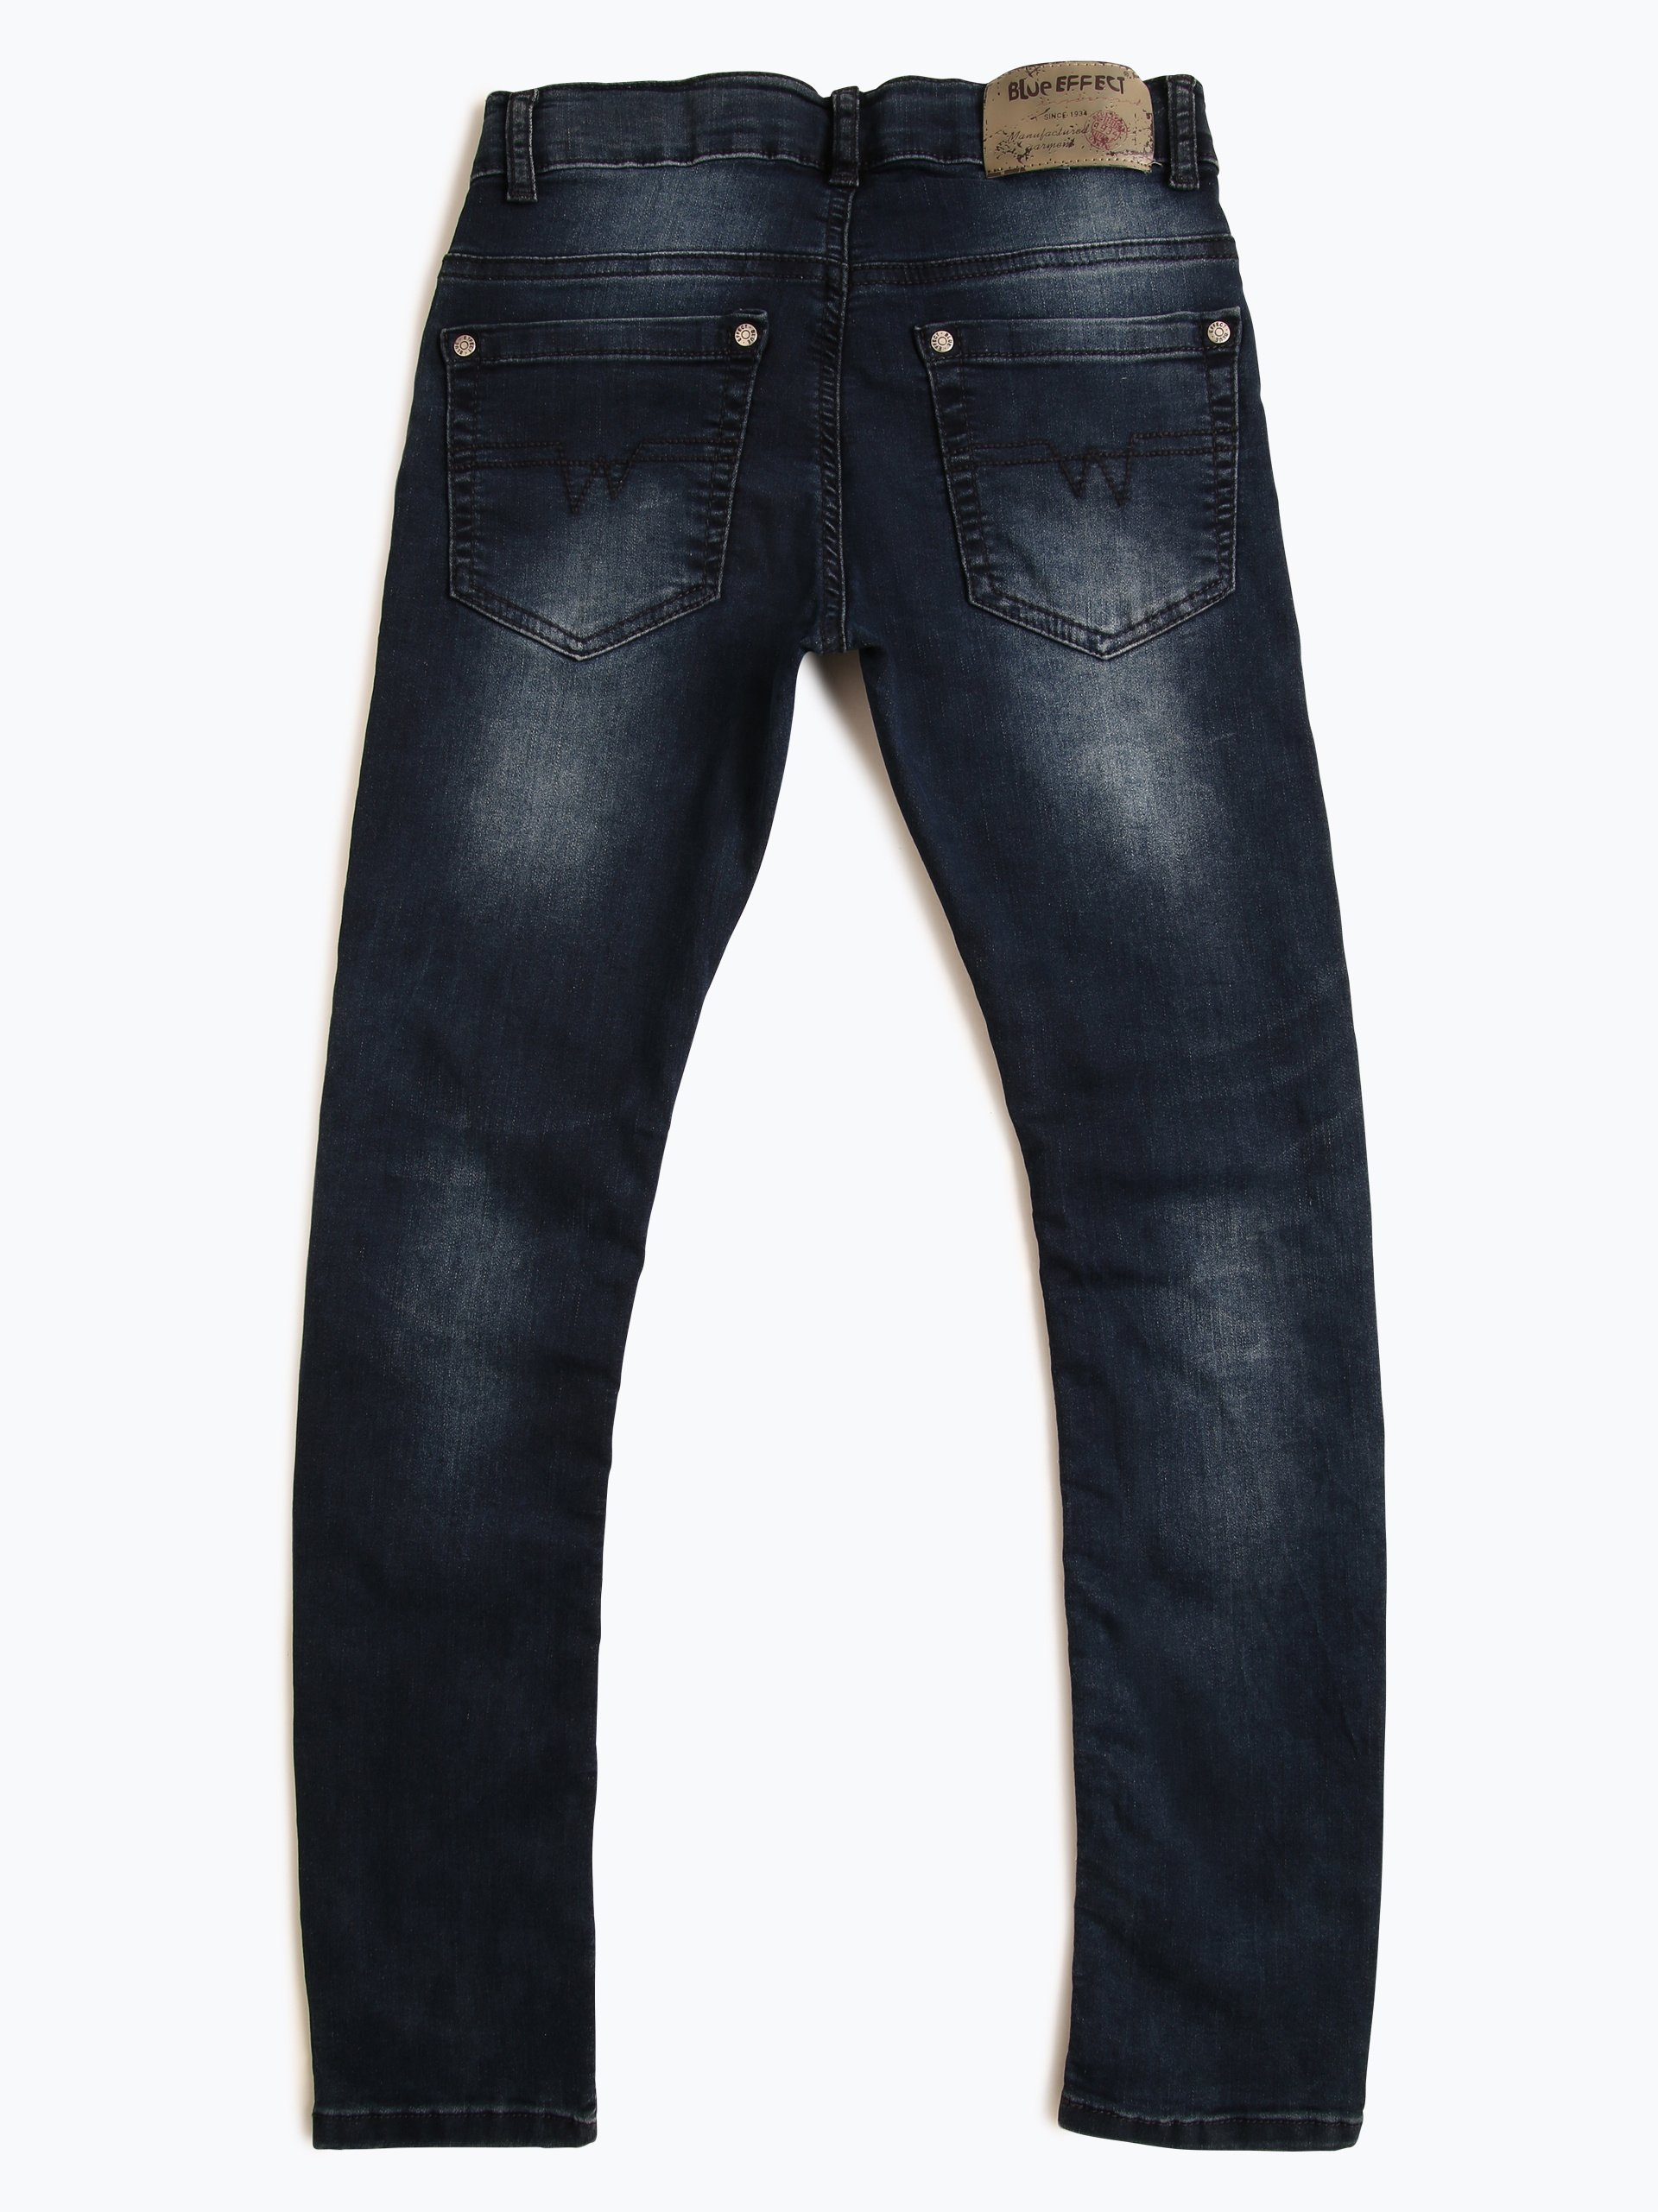 Blue Effect Jungen Jeans Skinny Fit